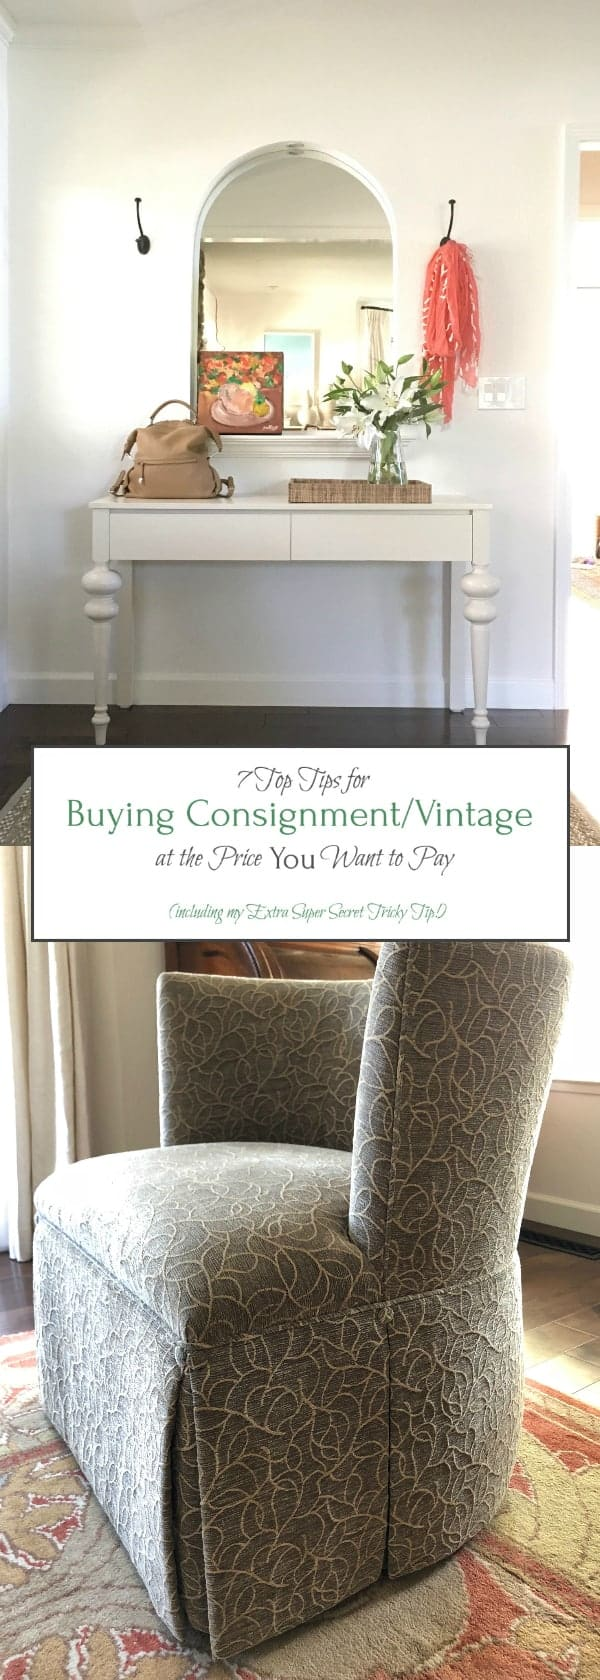 7 tips score awesome deals on vintage consignment furniture cheap